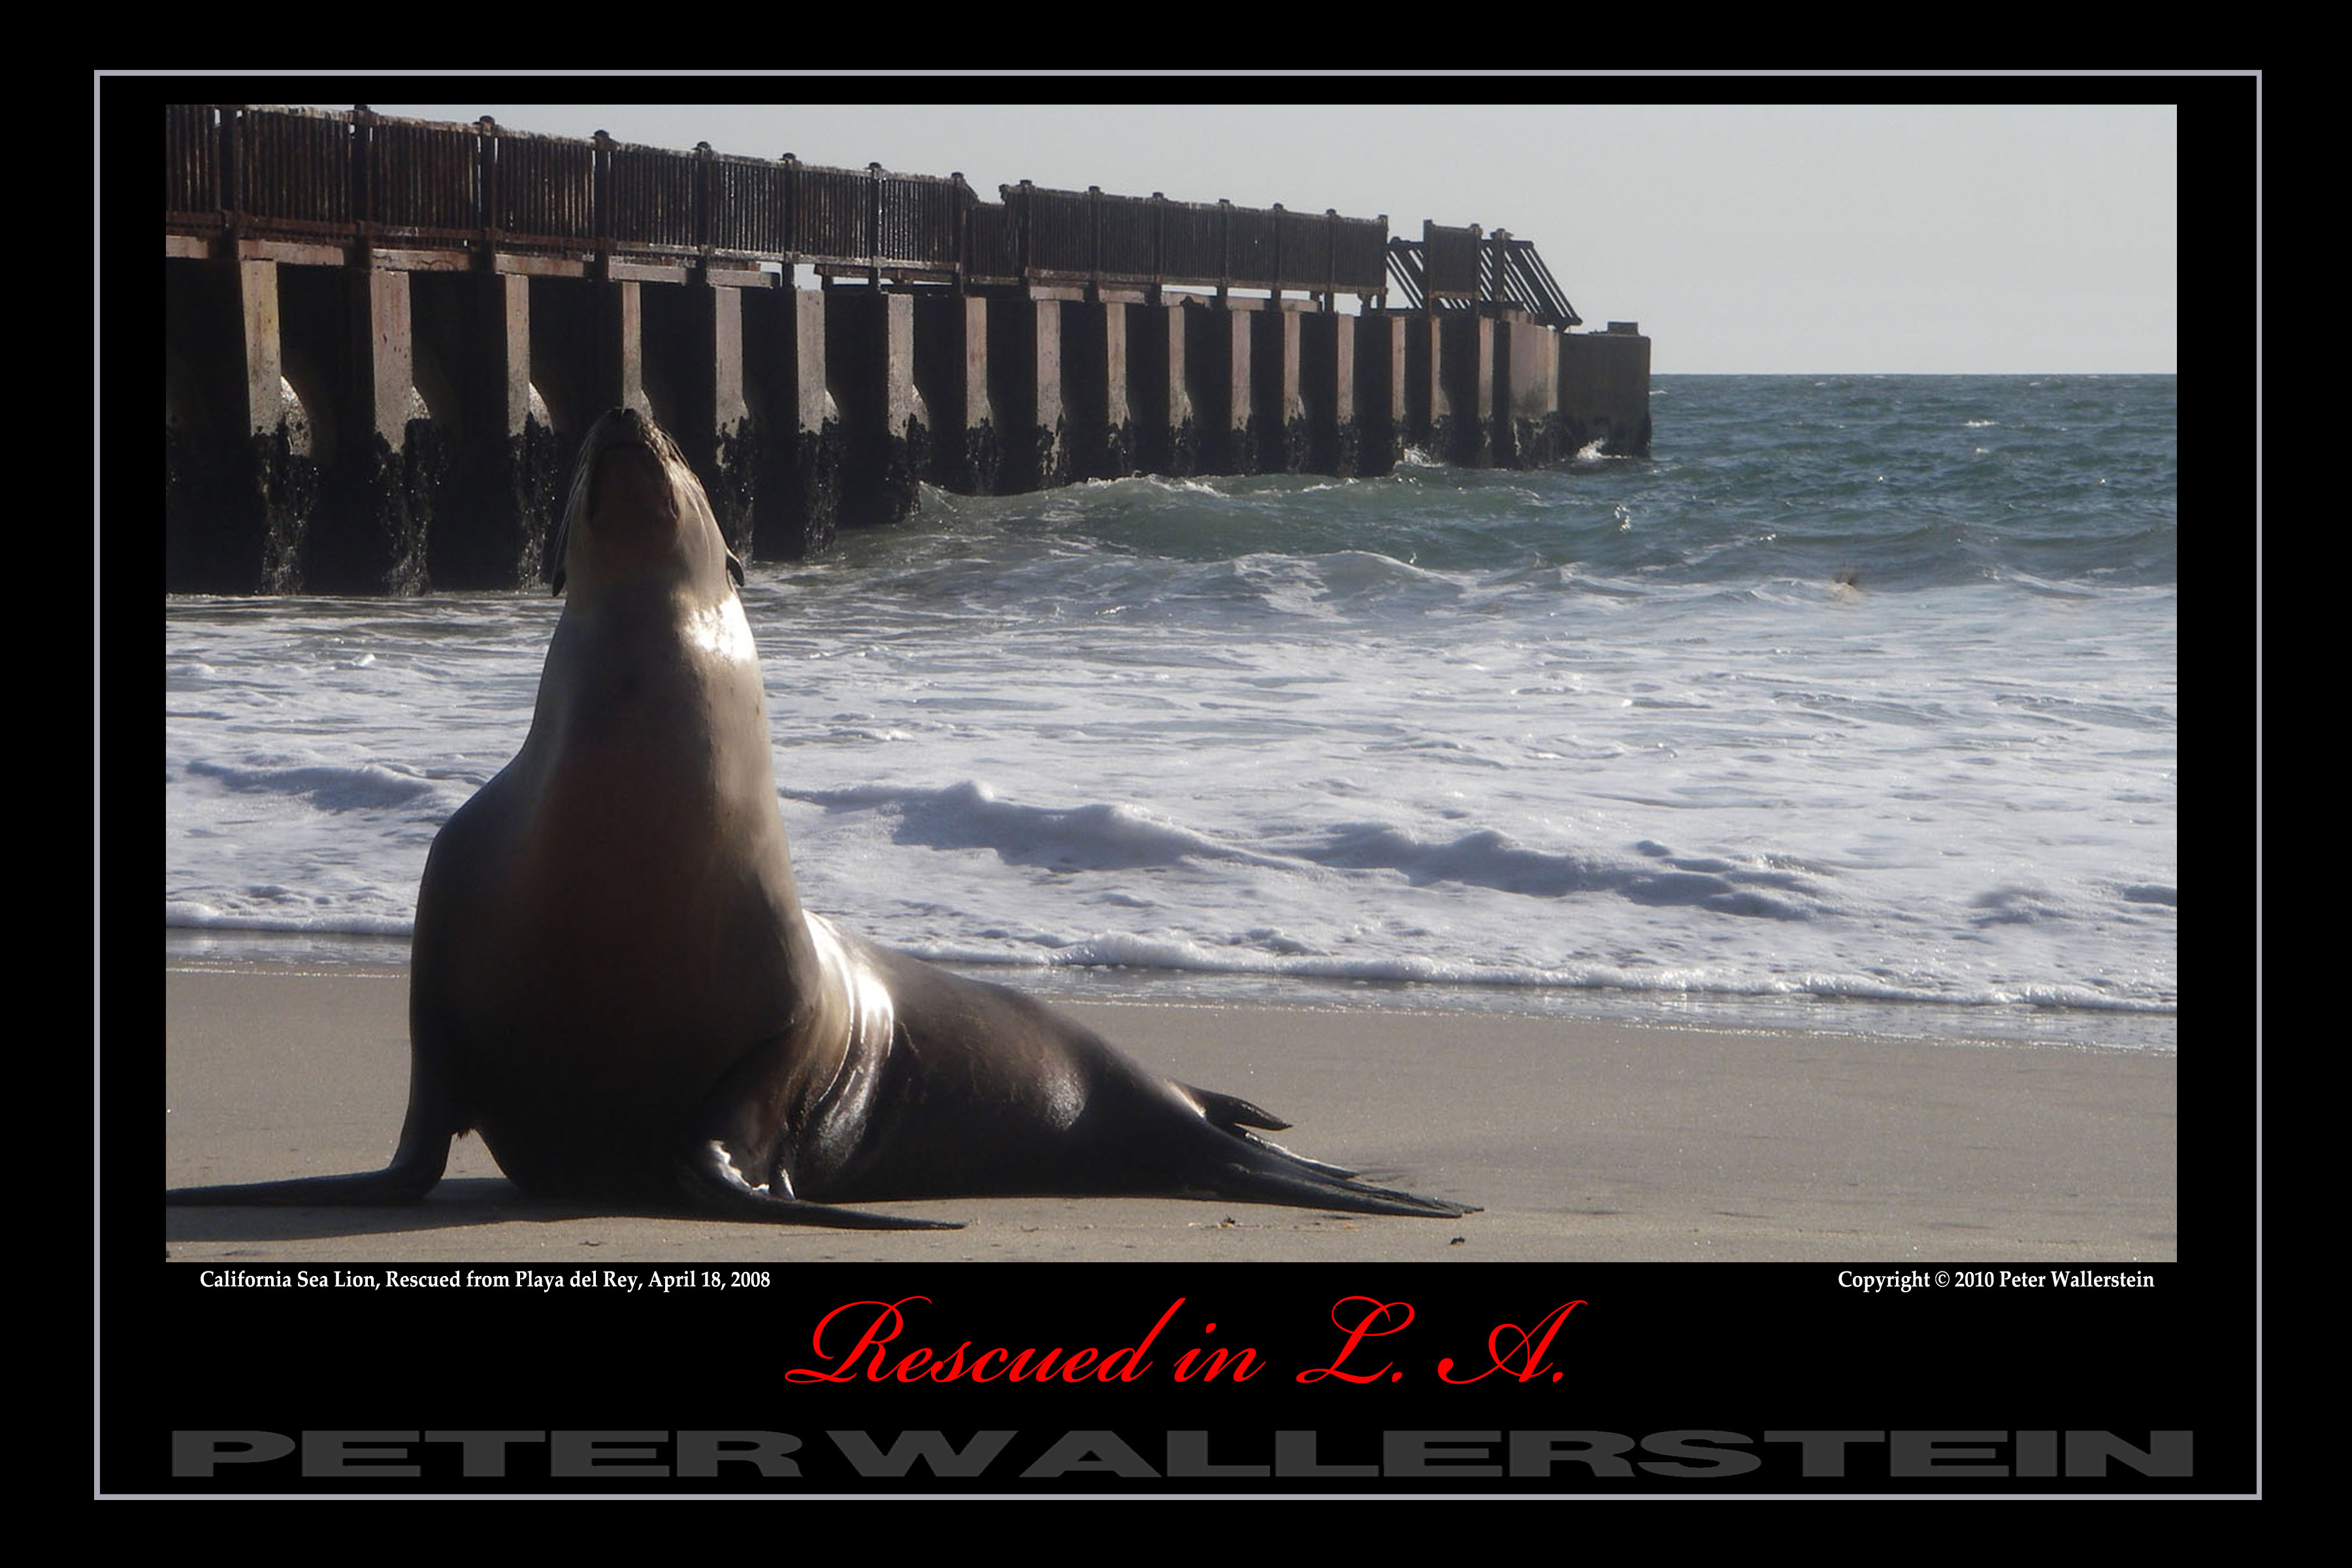 Sea Lion Playa del Rey